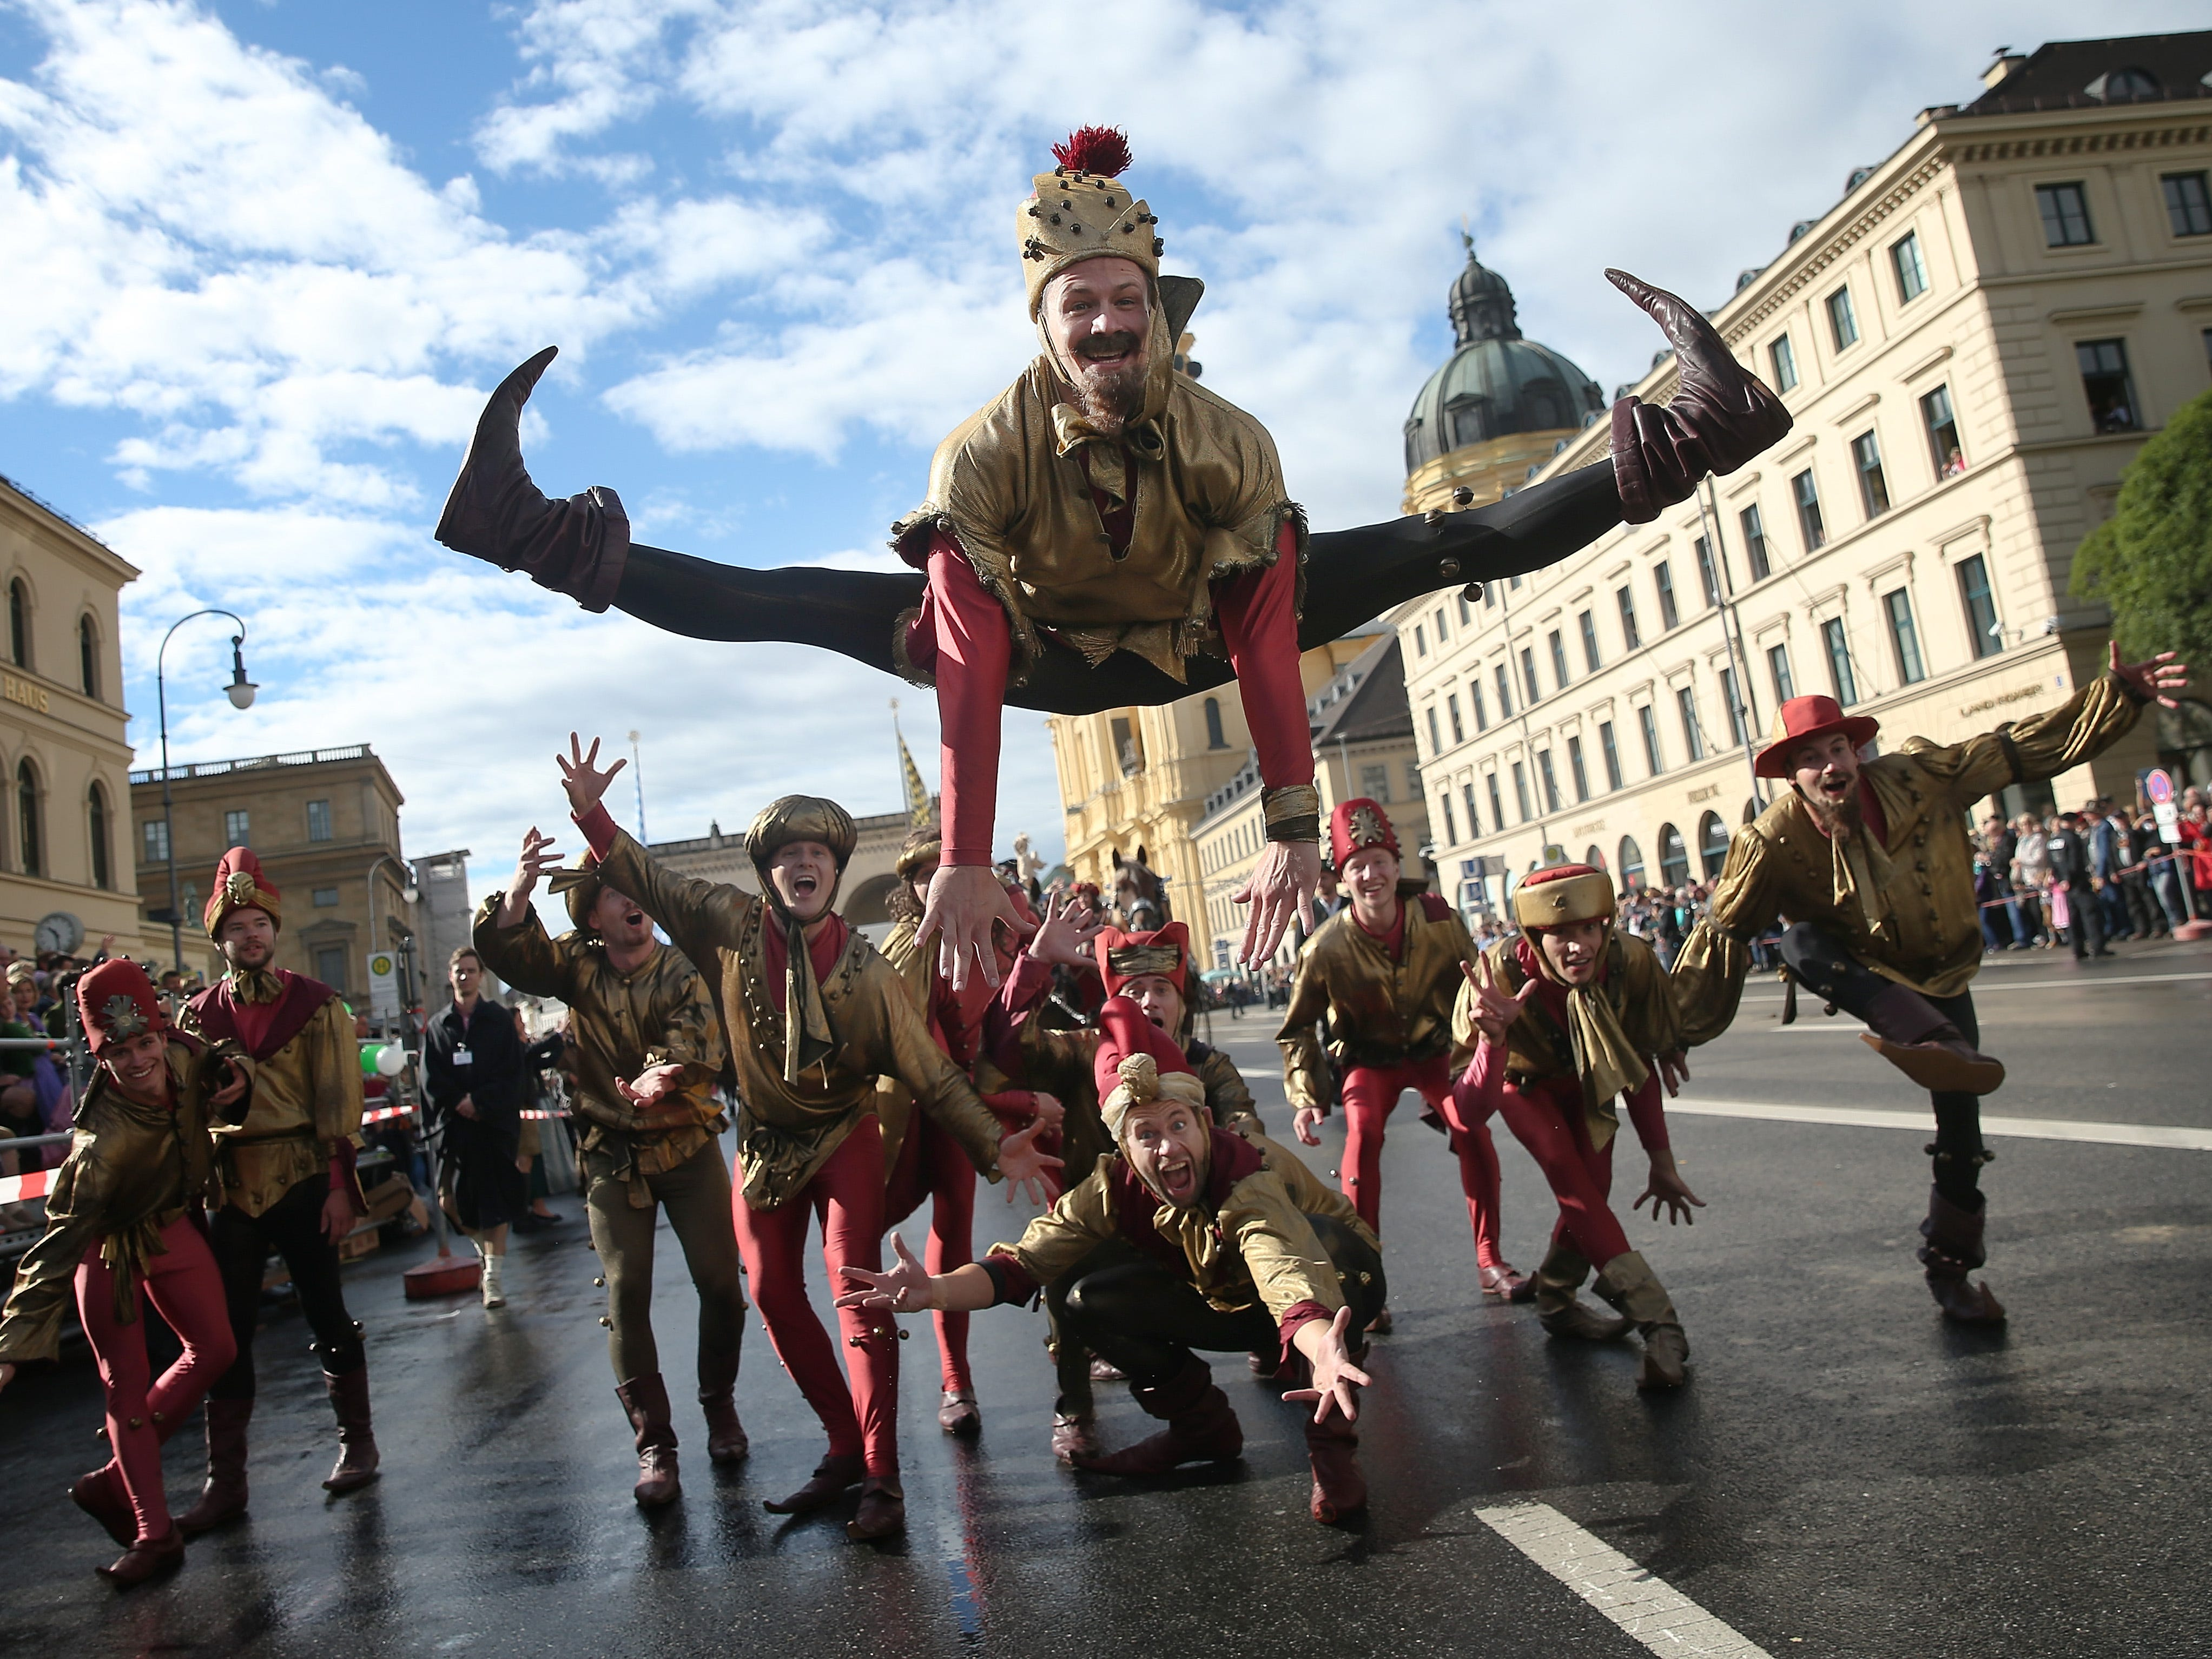 Jokers perform in the Oktoberfest parade of costumes of folk and crafts associations on the second day of the 2018 Oktoberfest beer festival on September 23, 2018 in Munich, Germany. This year's Oktoberfest runs through October 7 and is the world's largest beer festival. Oktoberfest typically draws over six million visitors.